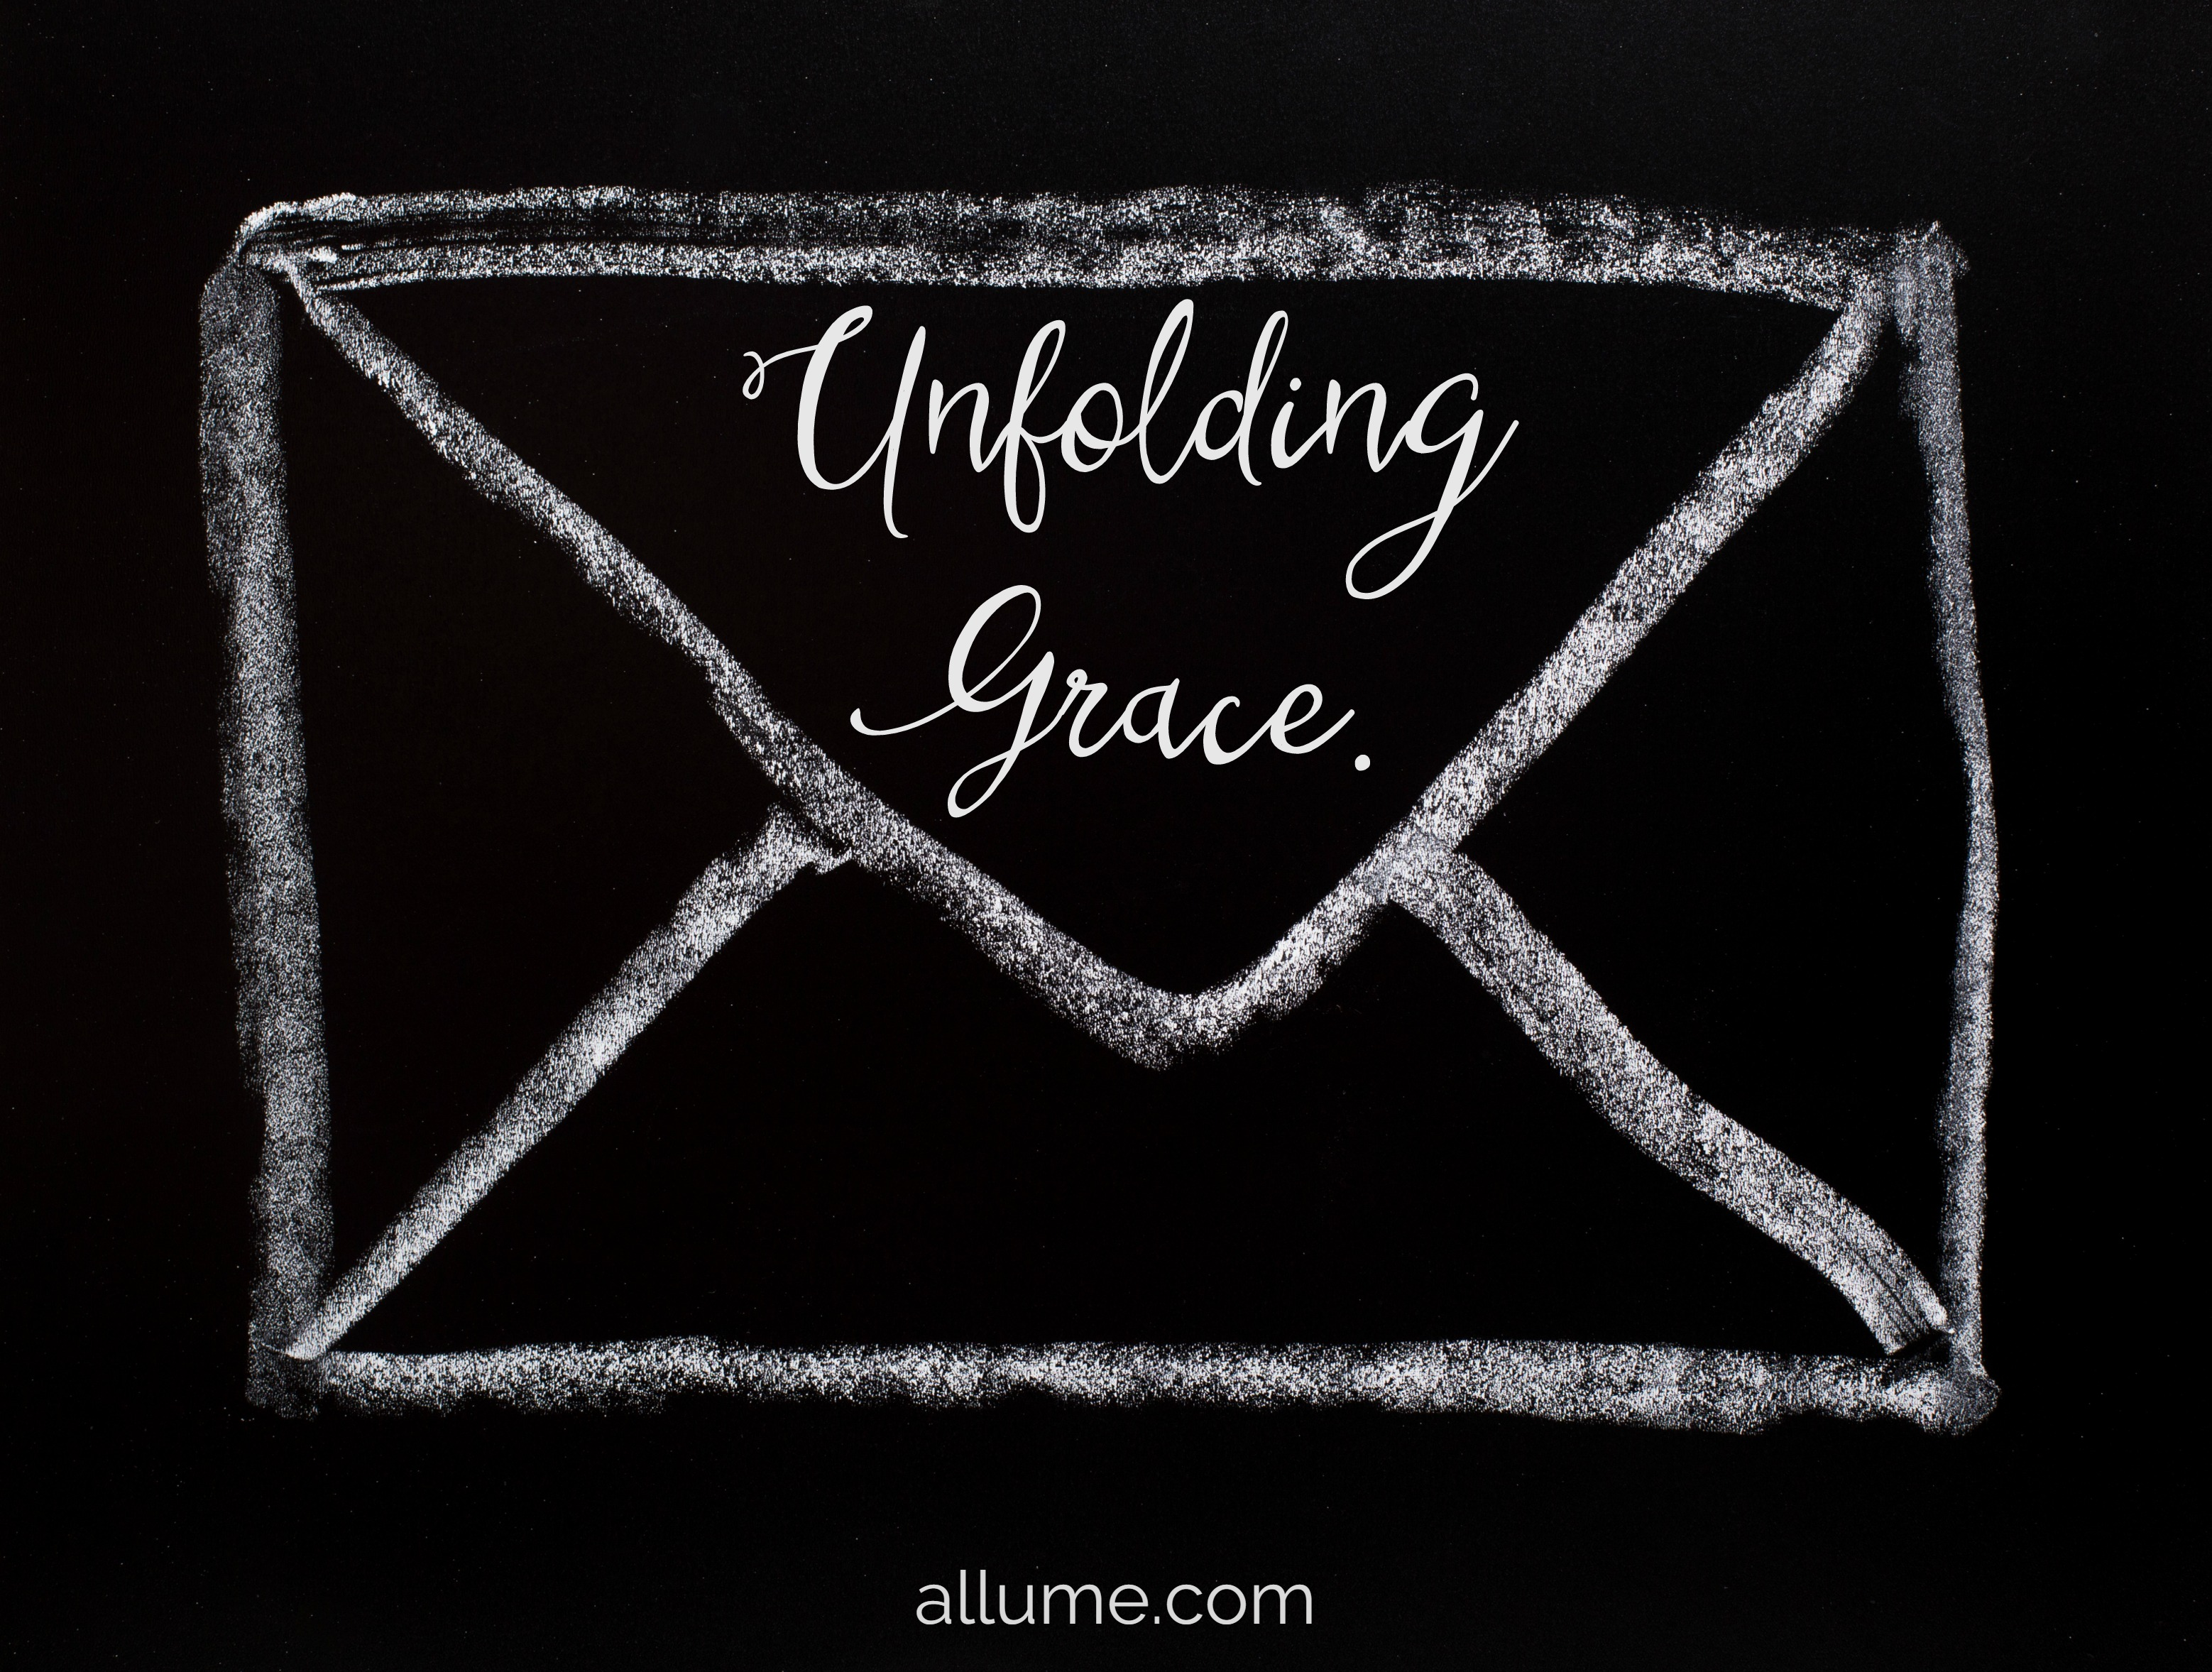 unfolding grace